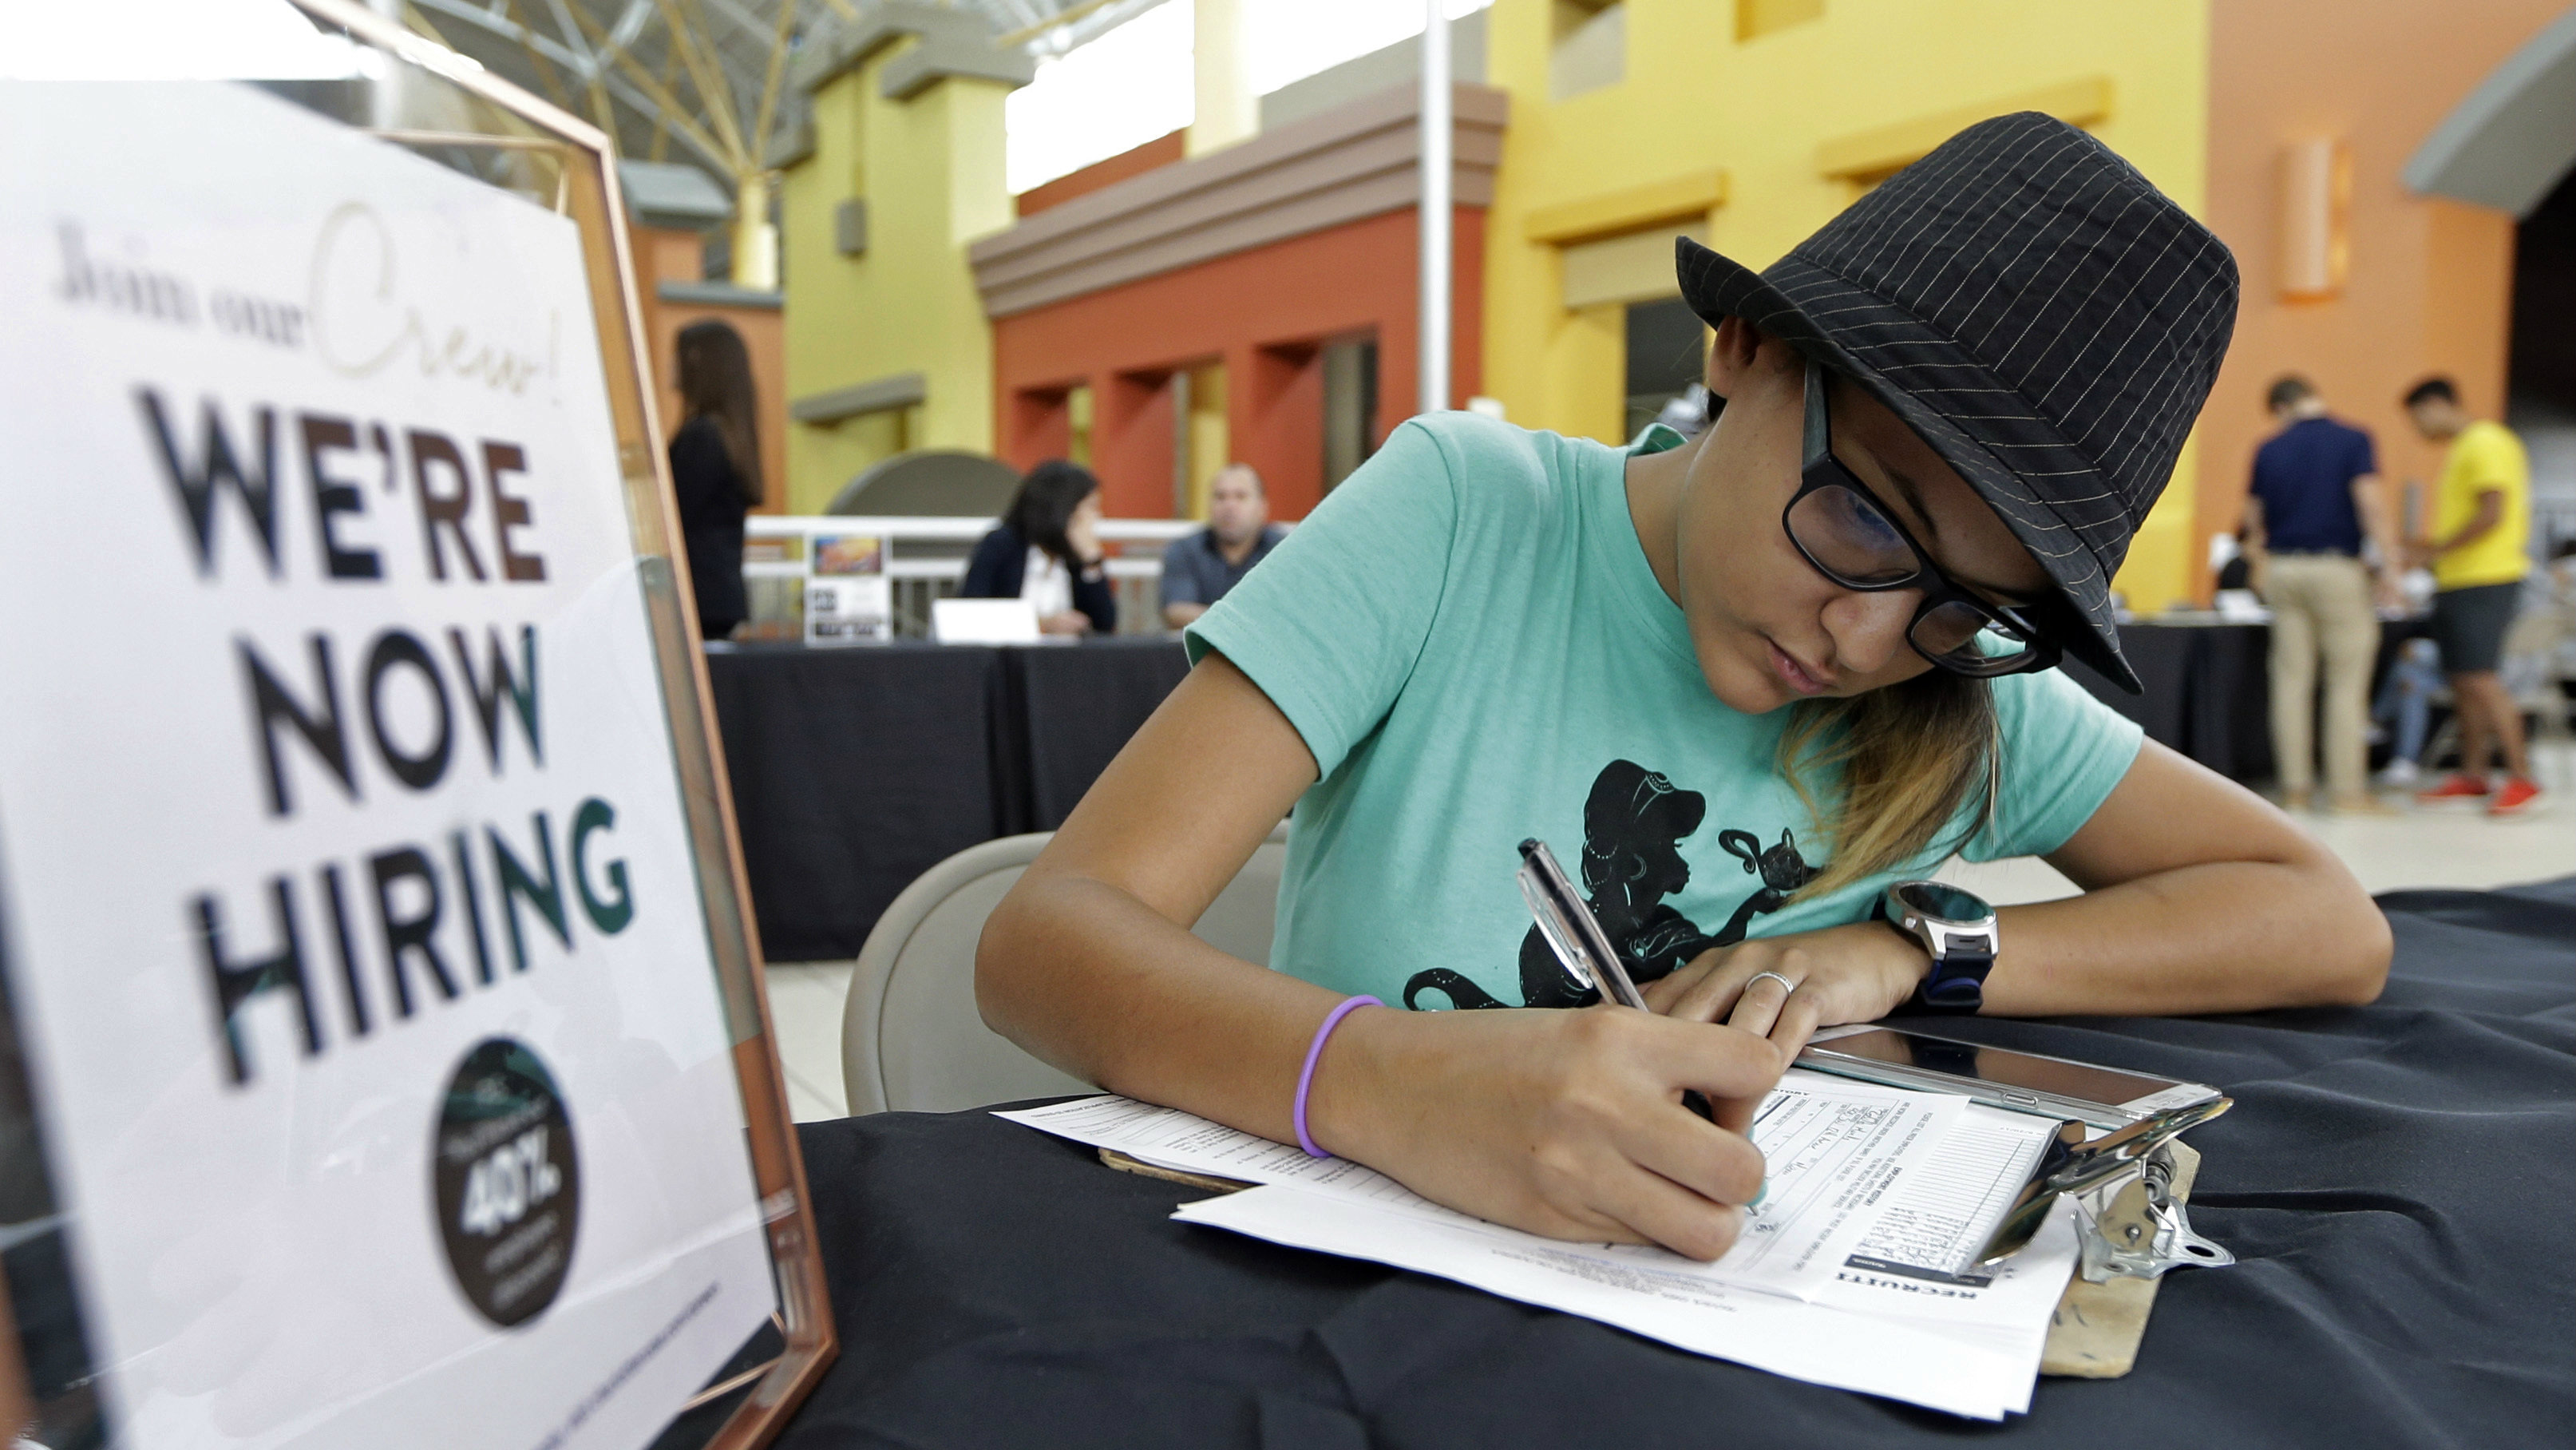 Job seeker Alejandra Bastidas fills out an application at a job fair, Tuesday, Oct. 3, 2017, at Dolphin Mall in Sweetwater, Fla. On Wednesday, Oct. 4, 2017, payroll processor ADP reports how many jobs private employers added in September.